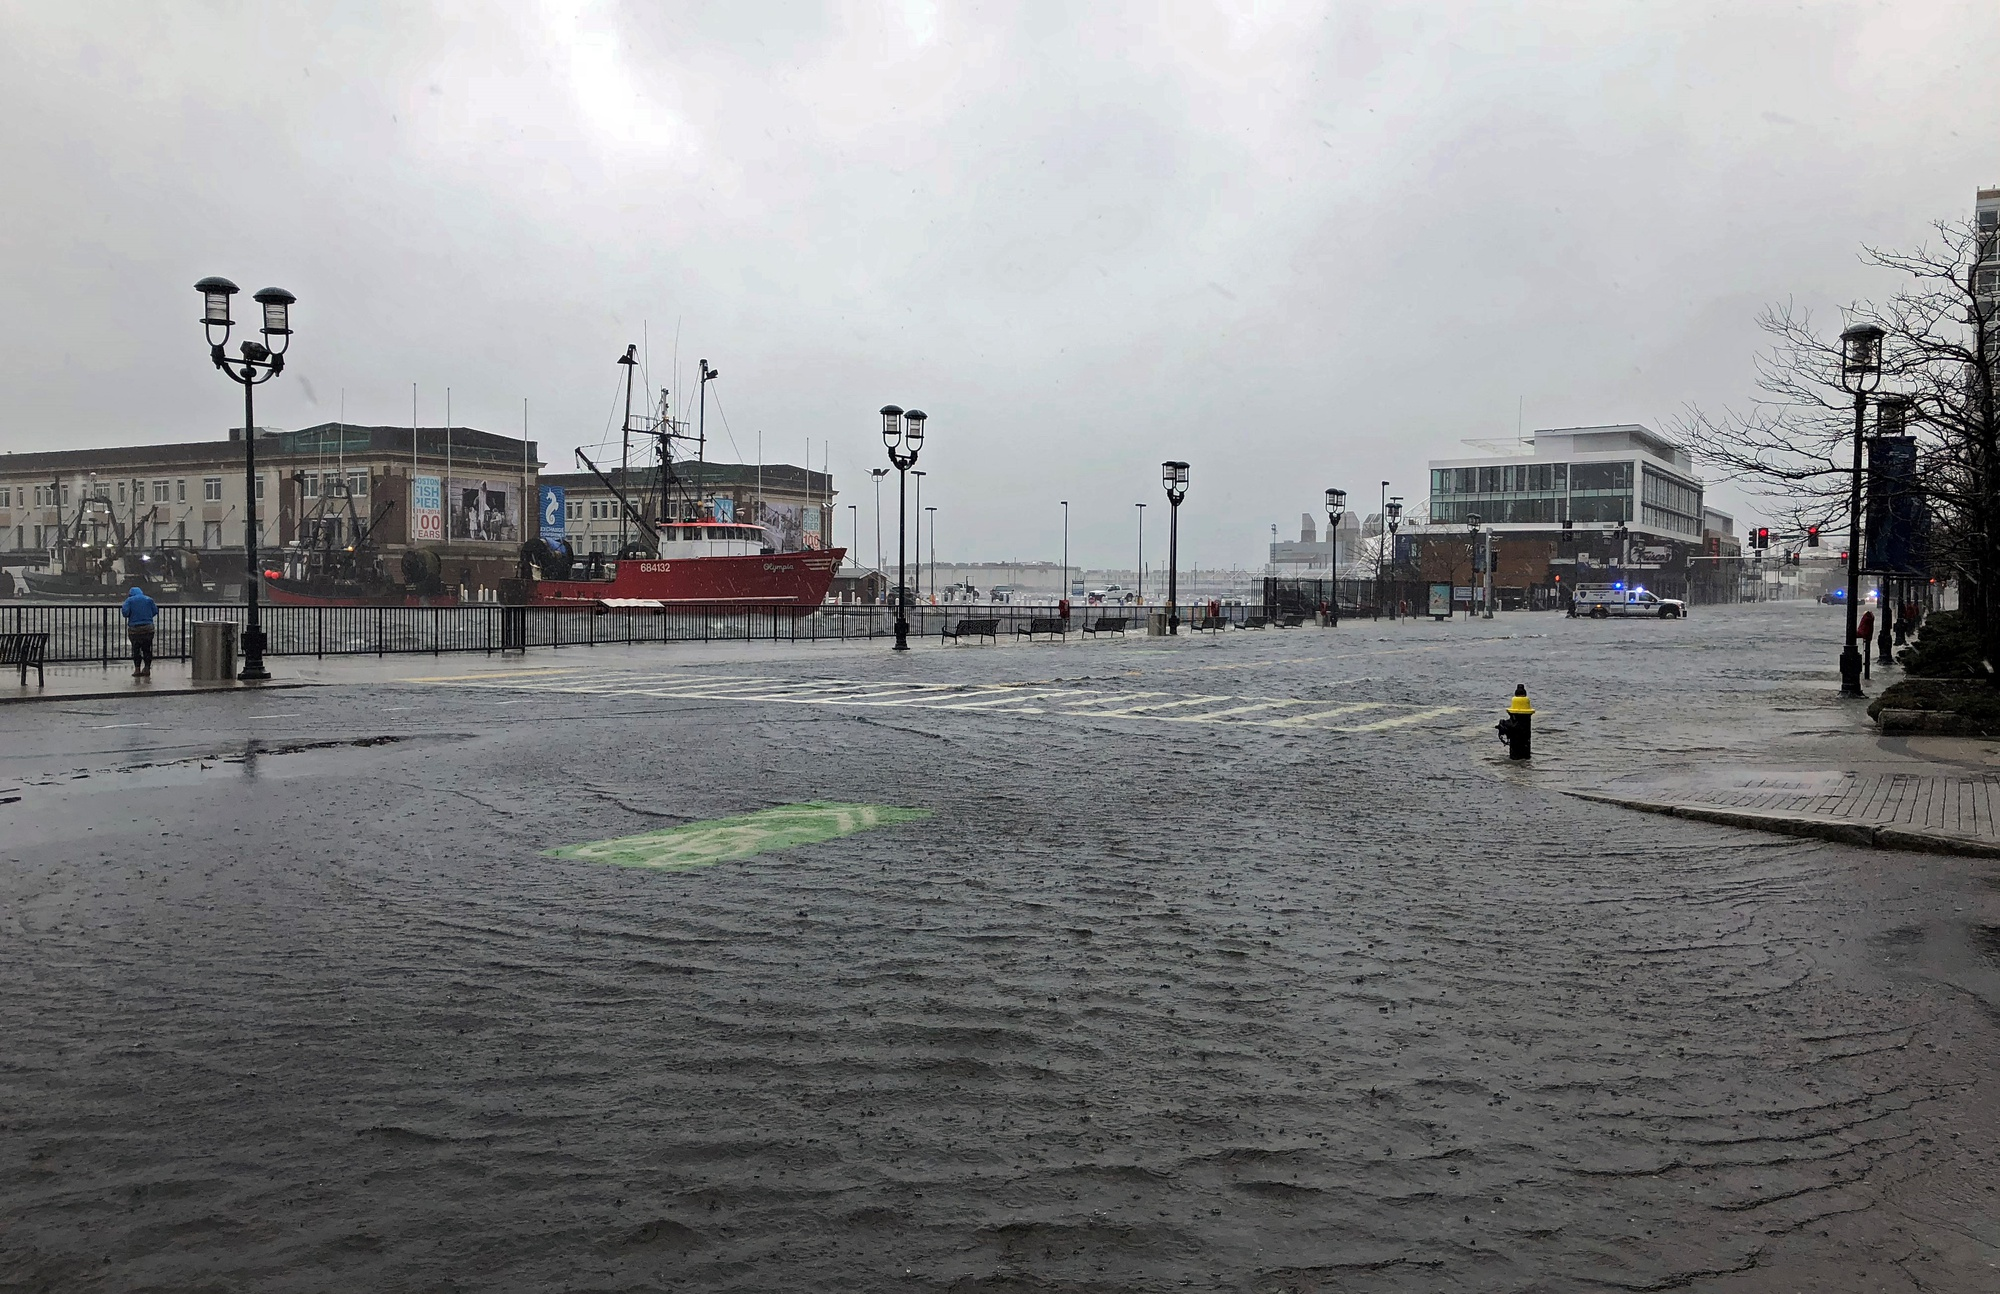 A nor'easter lashed Massachusetts in March 2018, flooding low-lying coastal areas and bringing heavy rain.